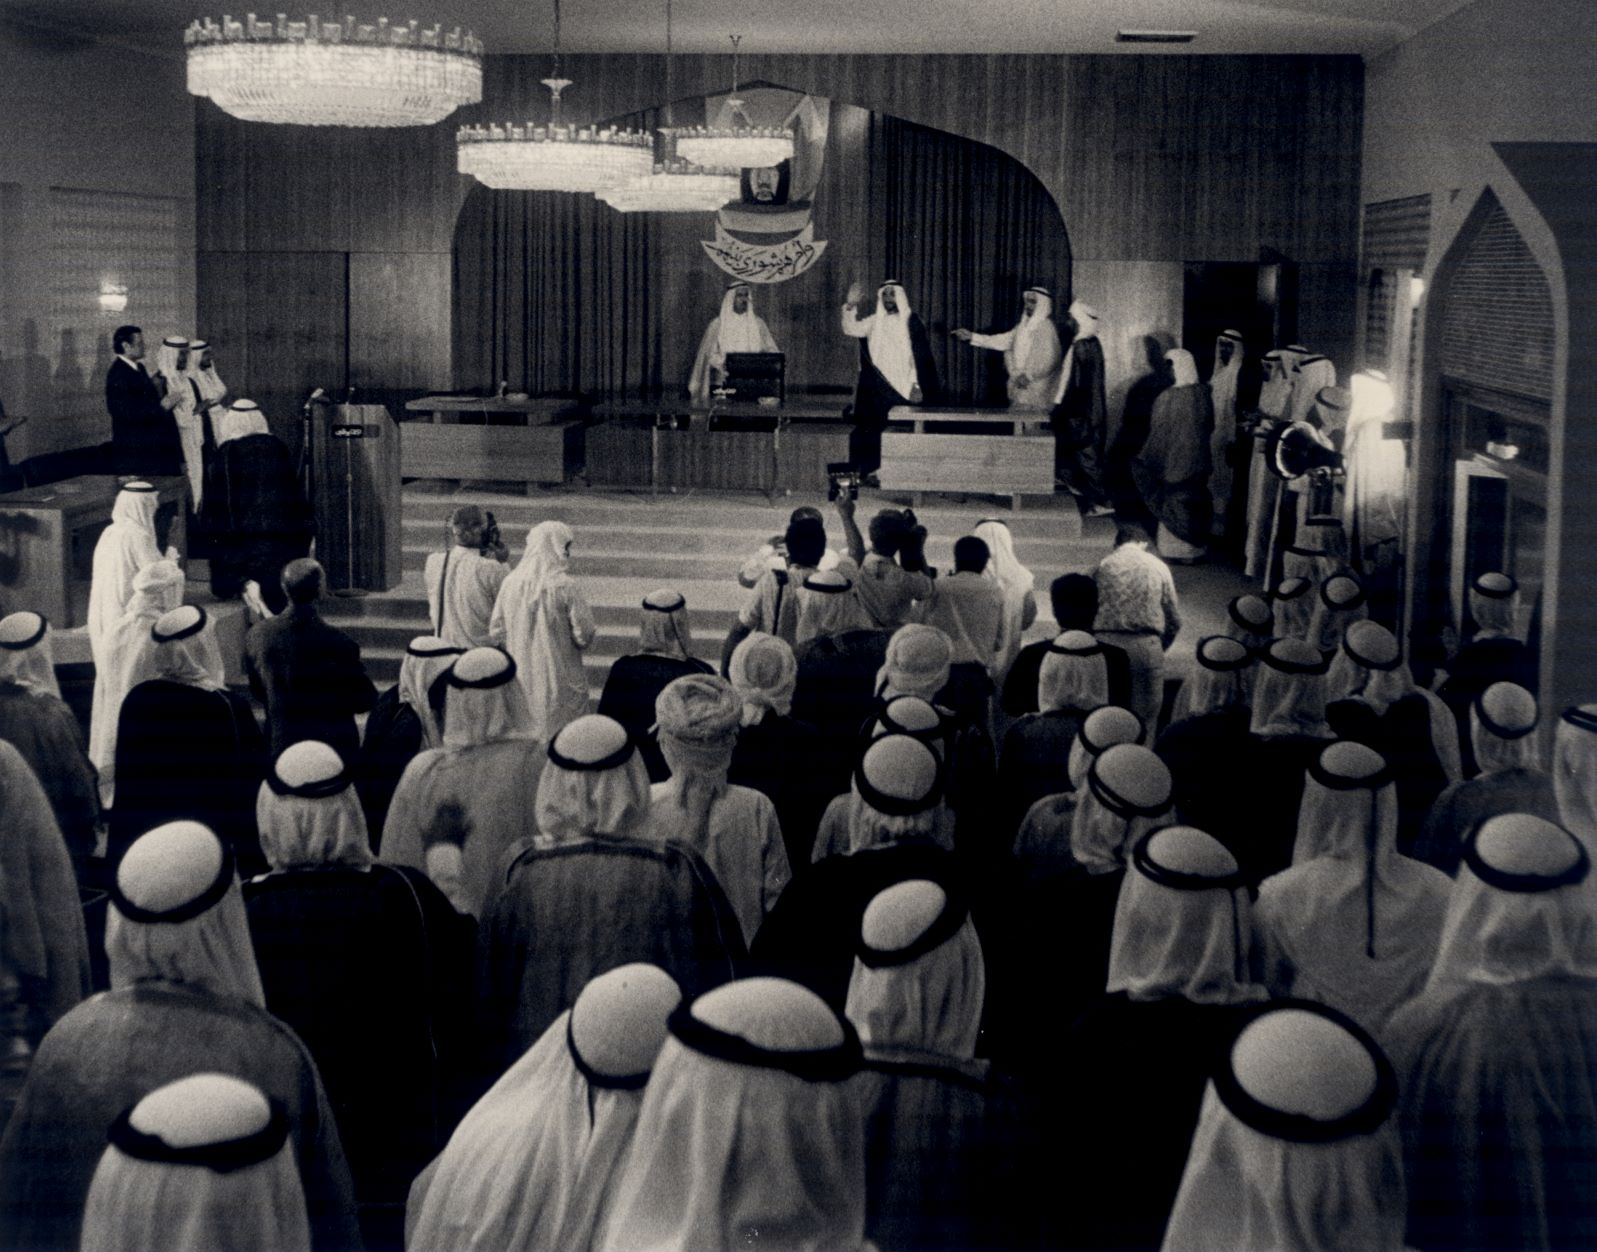 5. The late Sheikh Zayed Bin Sultan Al Nahyan attending the first session of the NCC © Al Ittiha.jpg